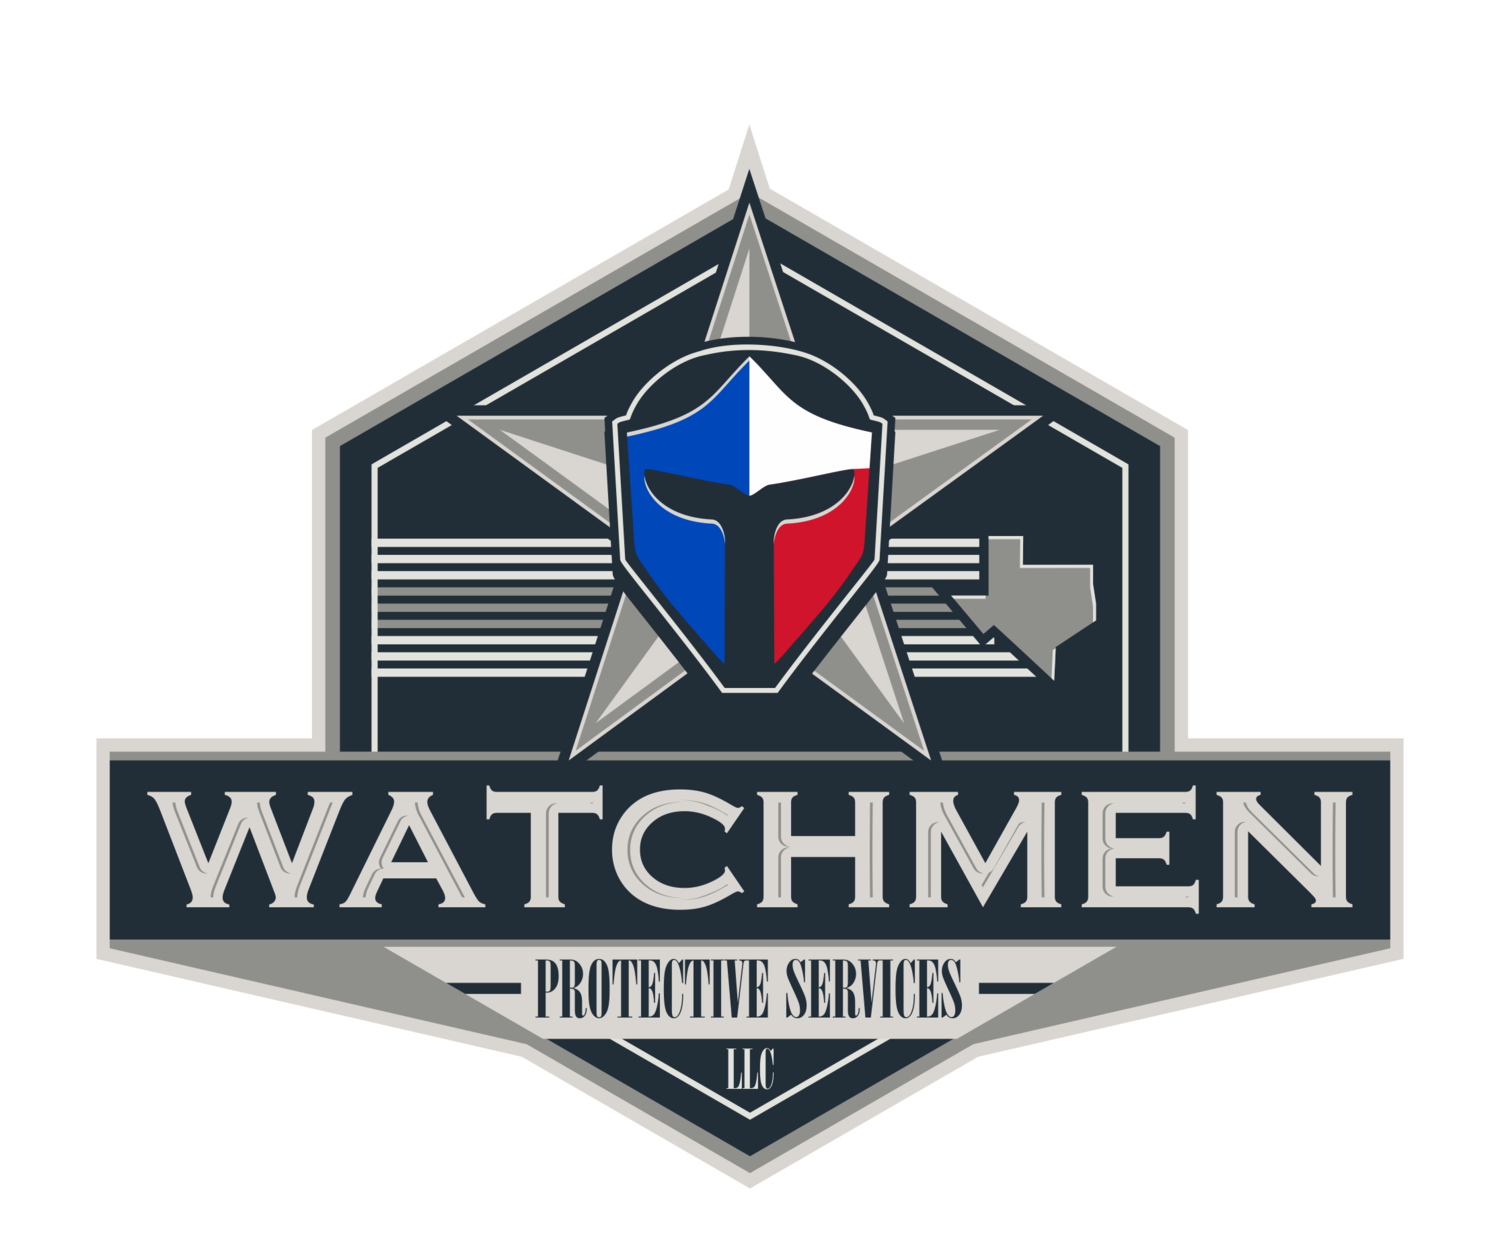 Watchmen Protective Services, LLC